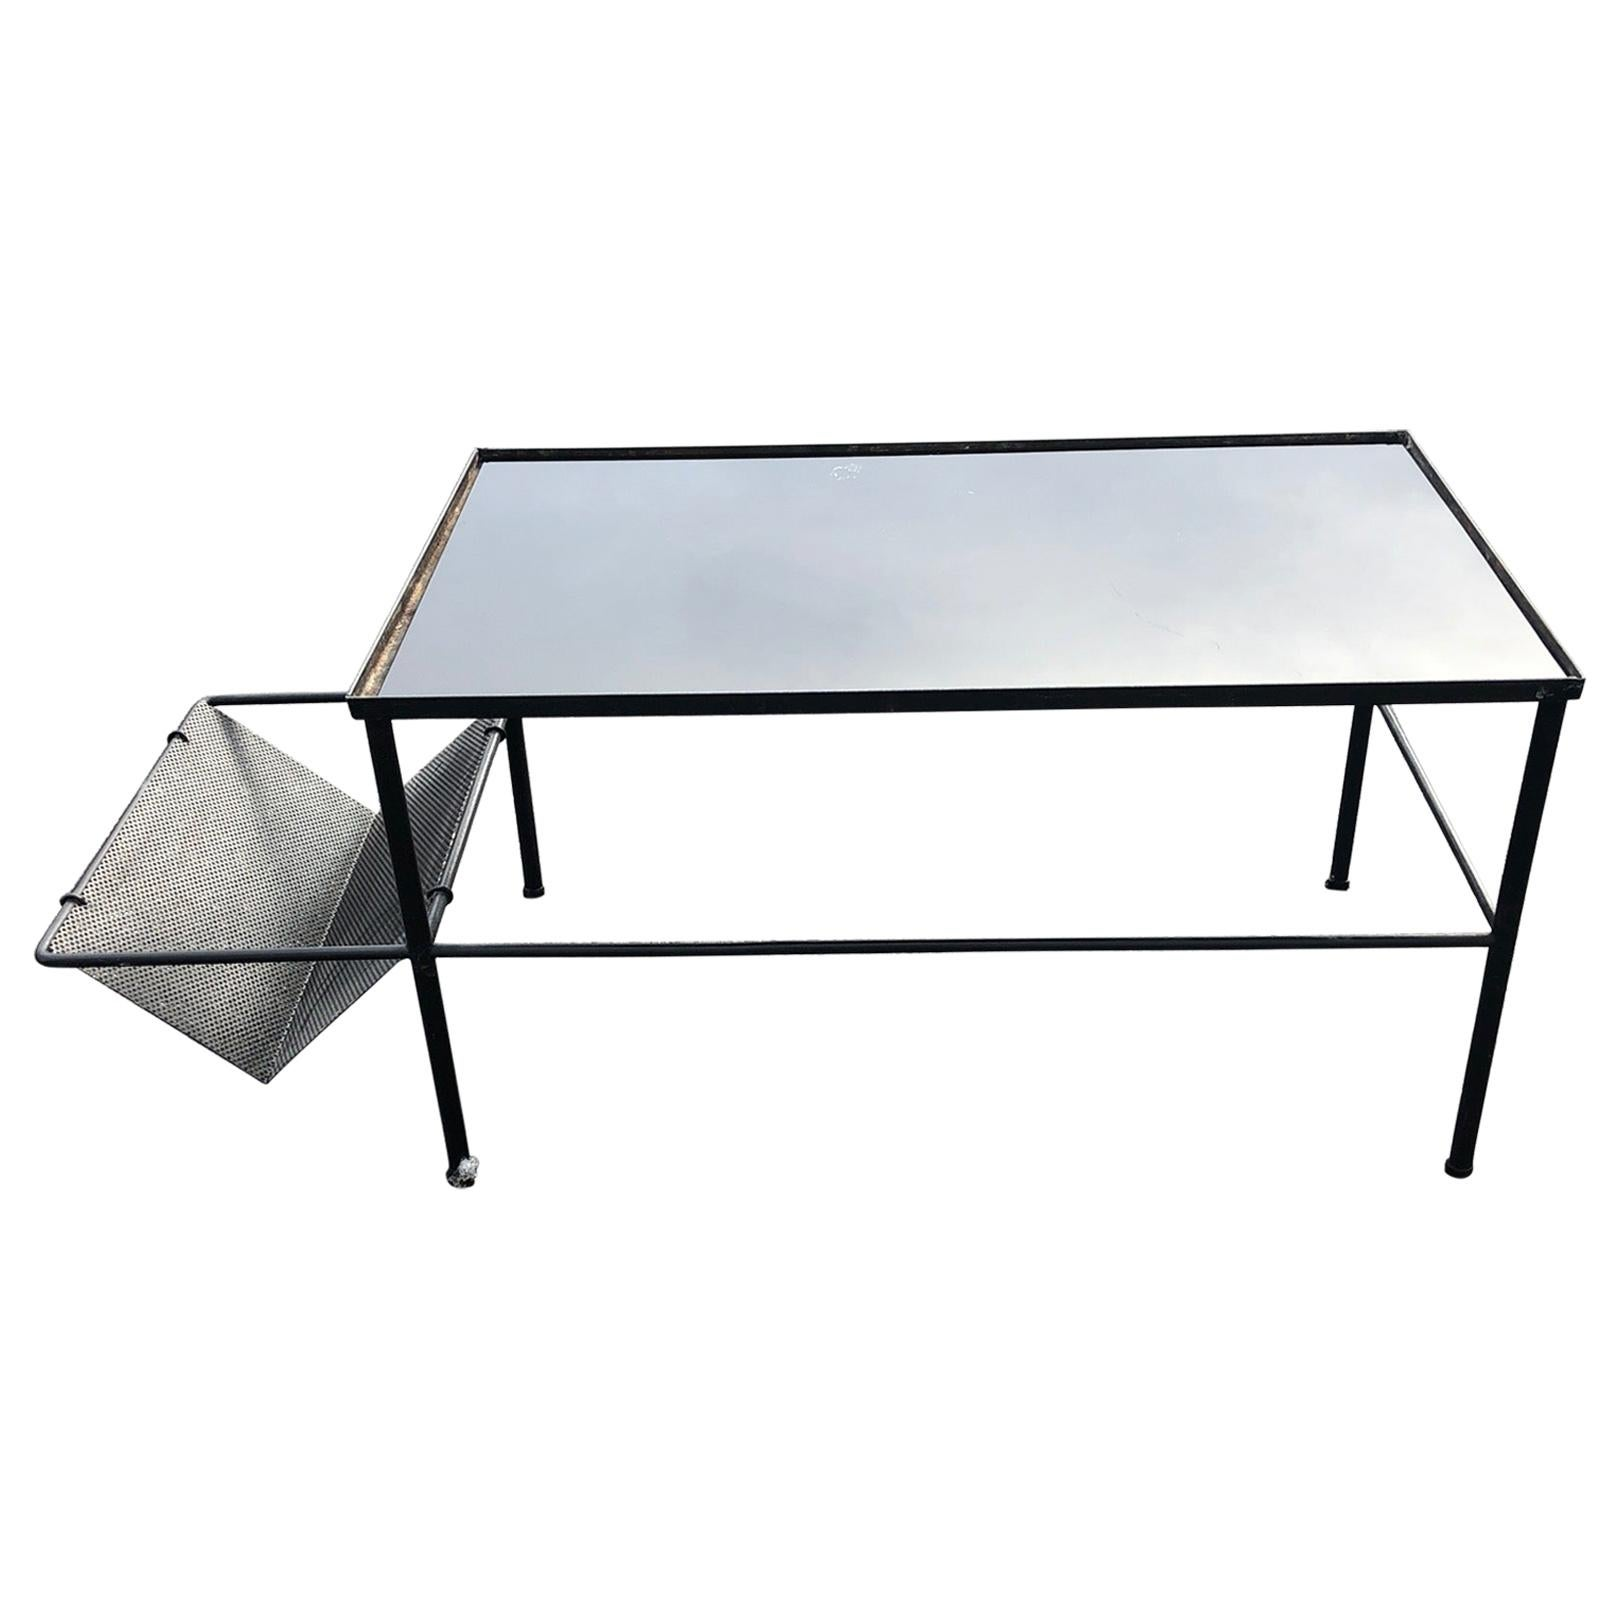 Coffee Table Attributed to Mathieu Matégot